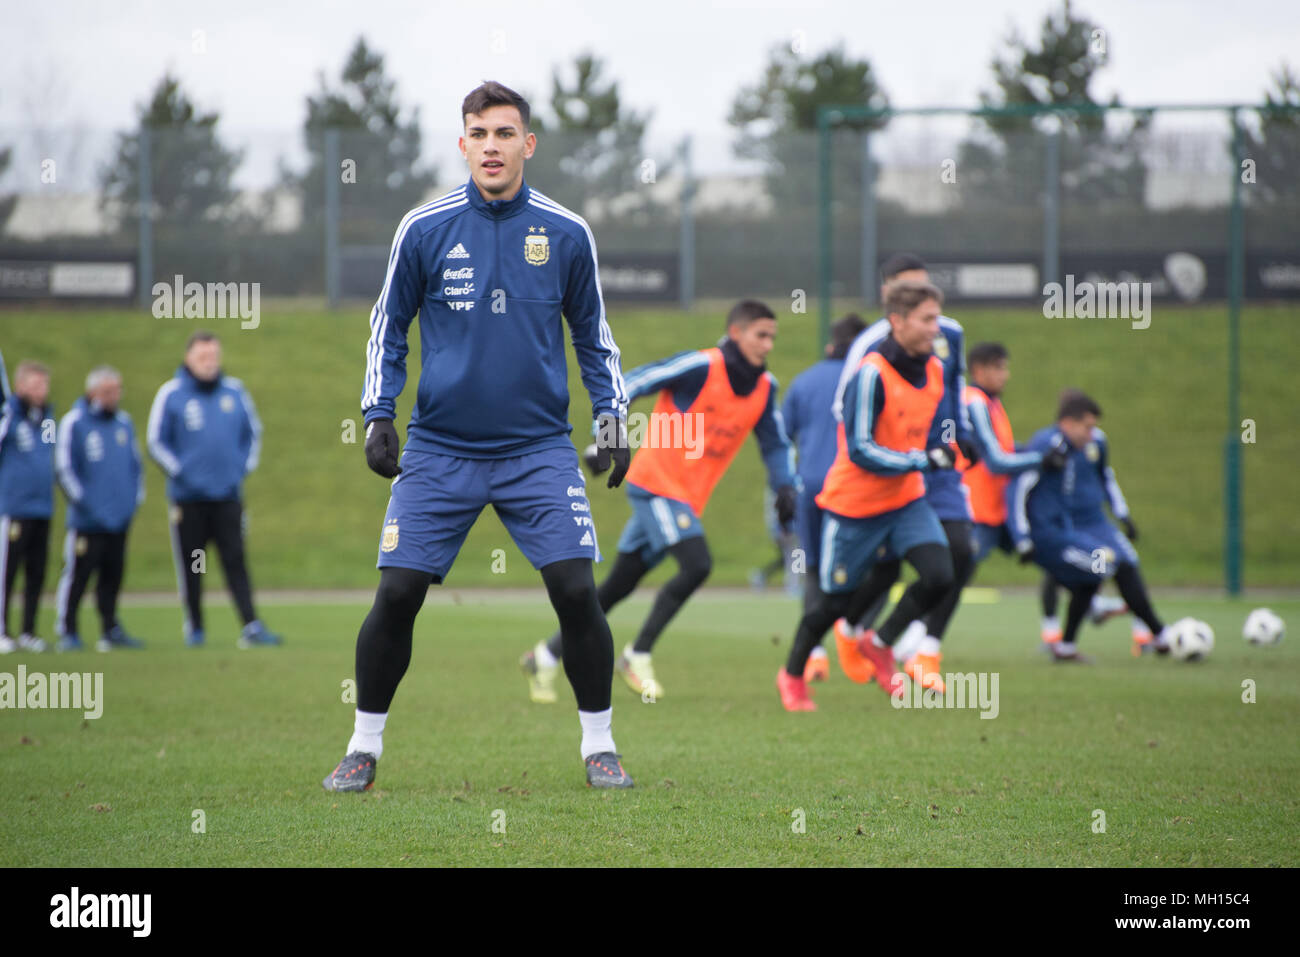 Marcos Rojo, a member of the Manchester United FC and Argentina national football squads, attends a training session at the Etihad Stadium in Manchest - Stock Image